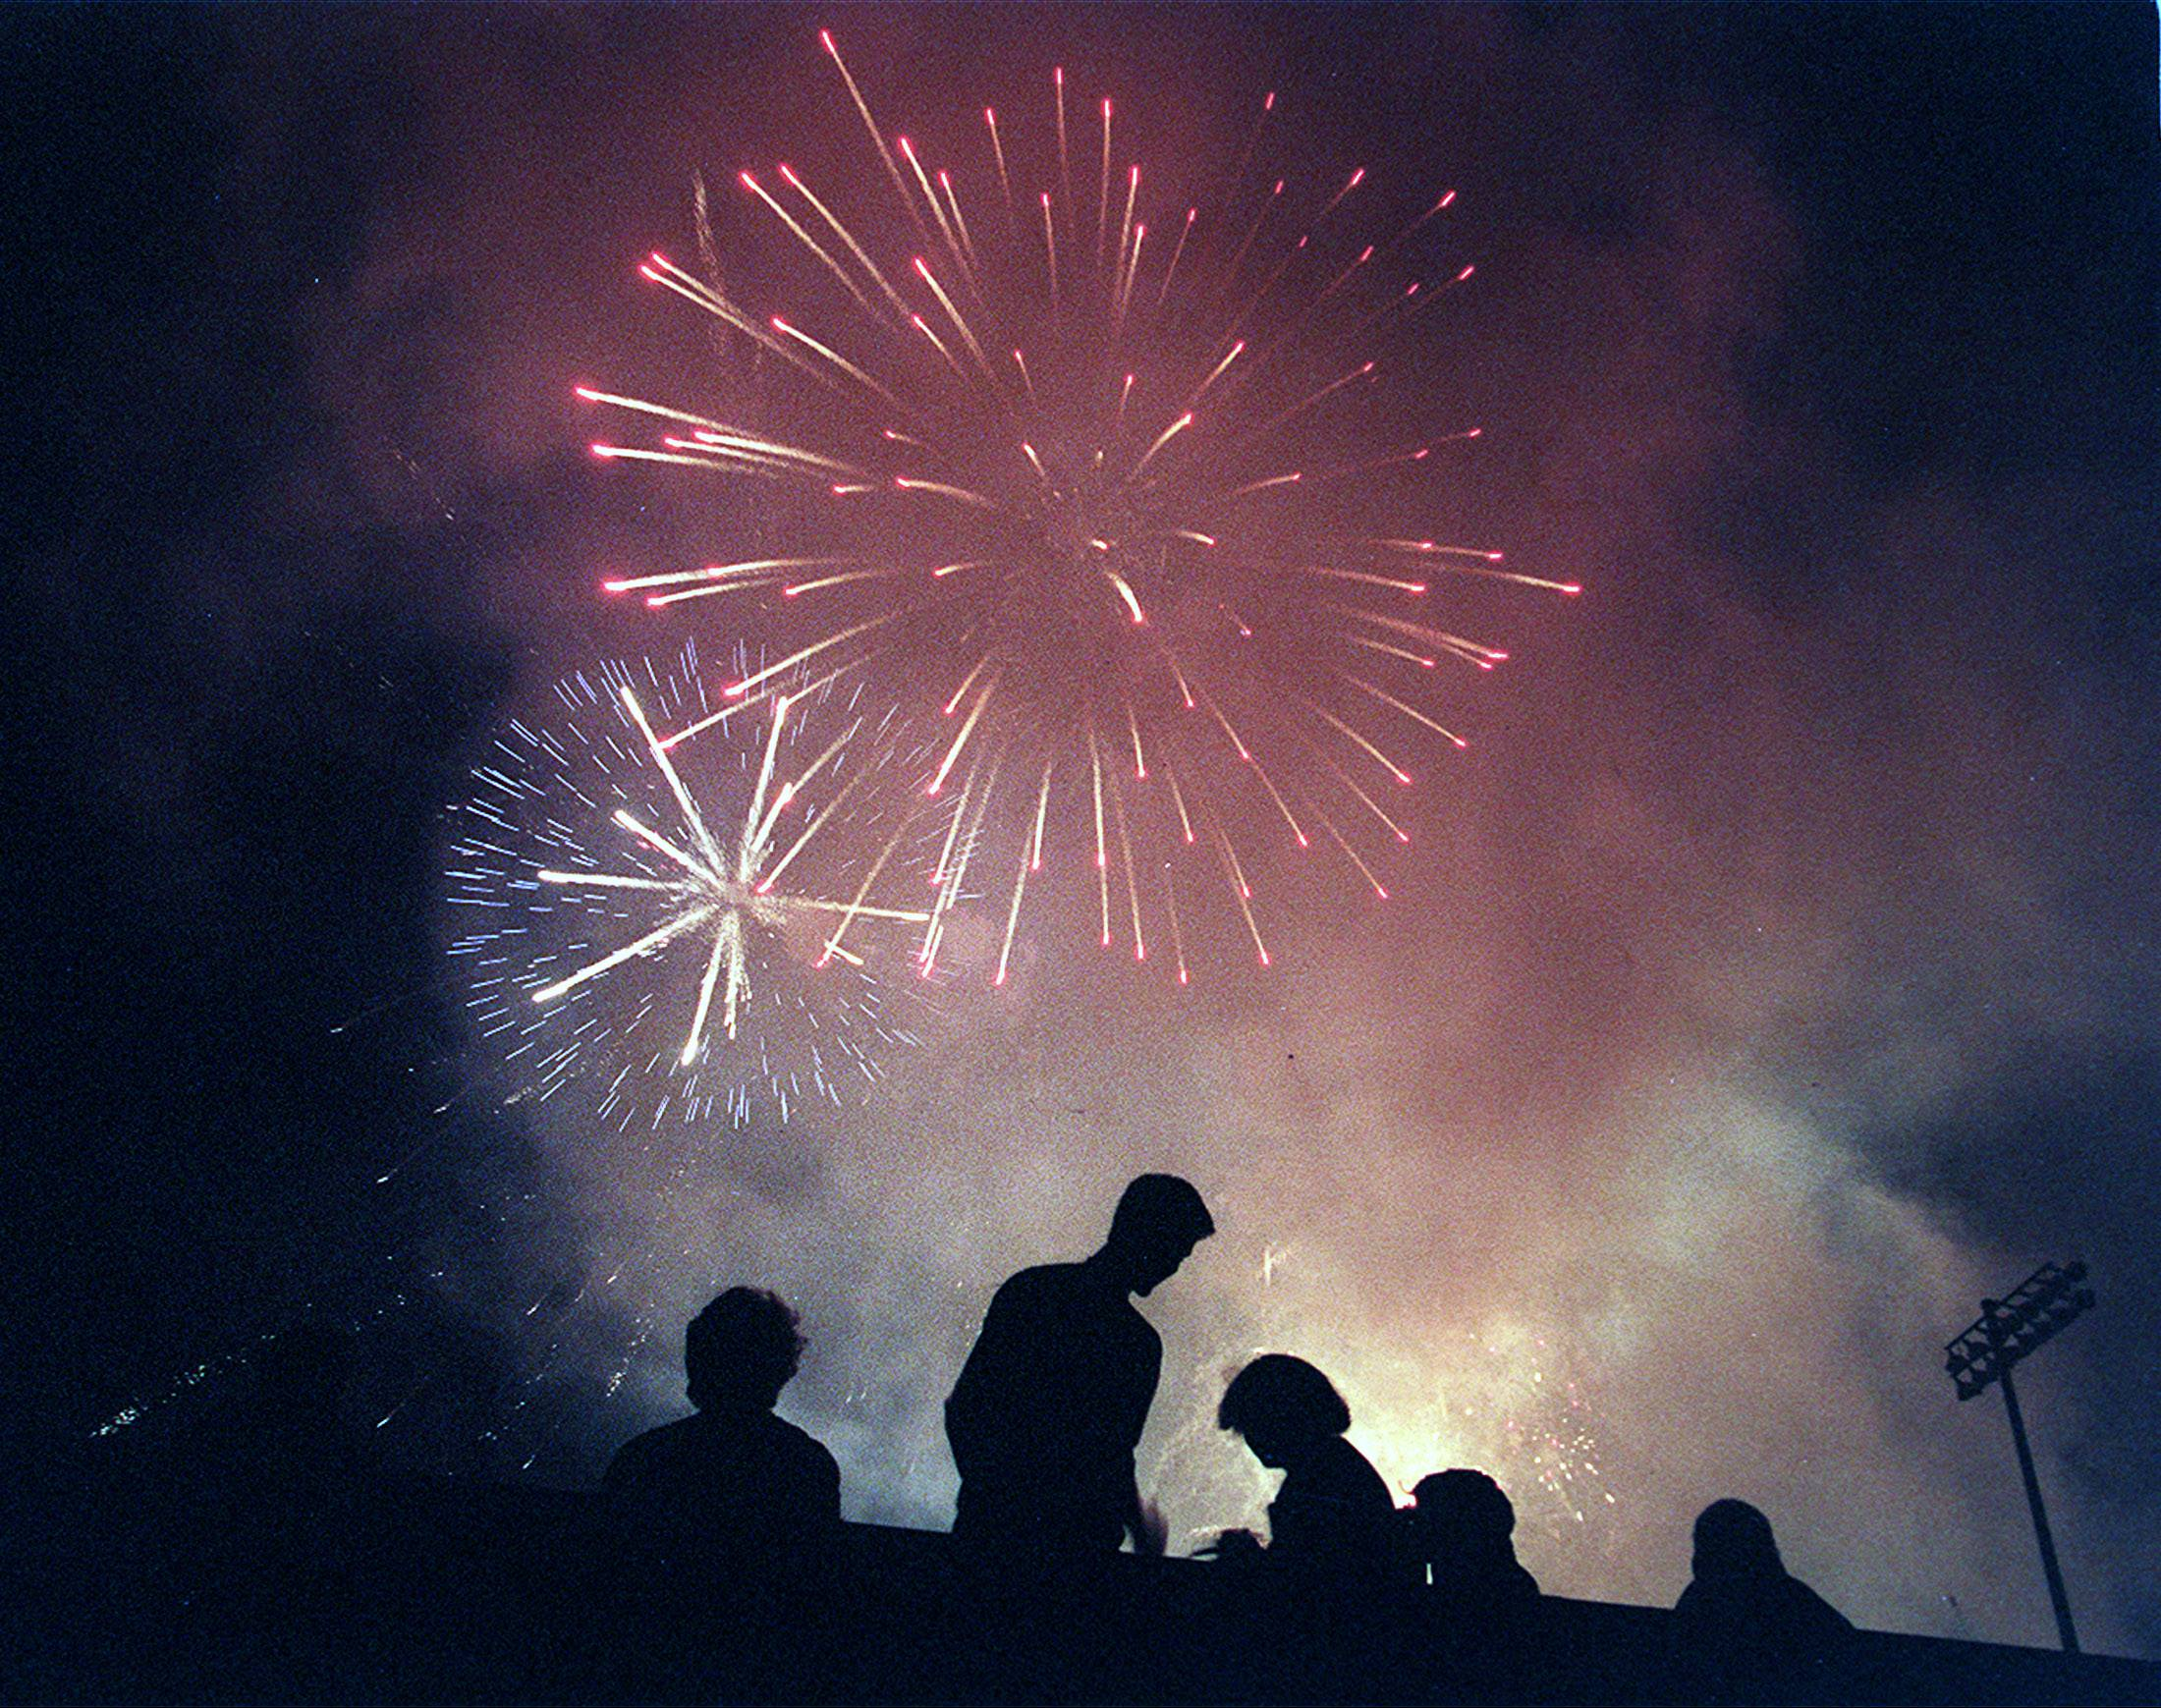 Mental health experts and veterans advocacy officials remind residents living near veterans that fireworks displays may trigger post-traumatic stress disorder symptoms in neighboring combat veterans.